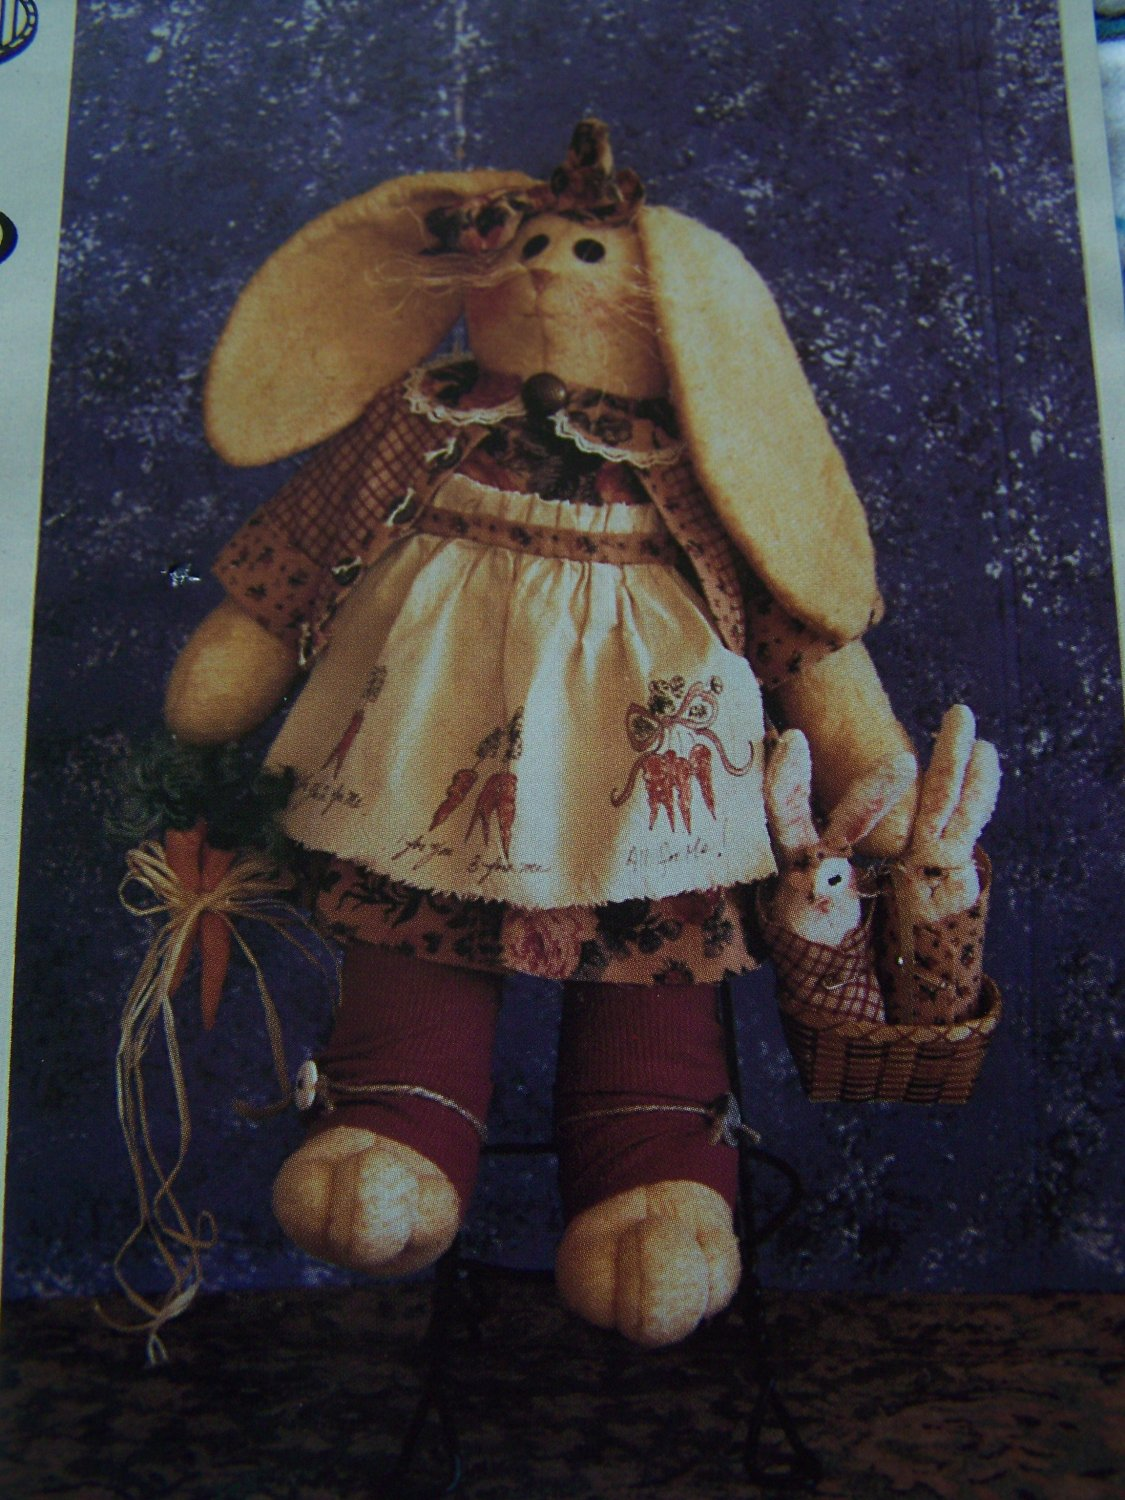 "New Sewing Pattern Flop Ear Bunny Rabbit Stuffed Toy Doll & Clothing 24"" Tall & Babies"